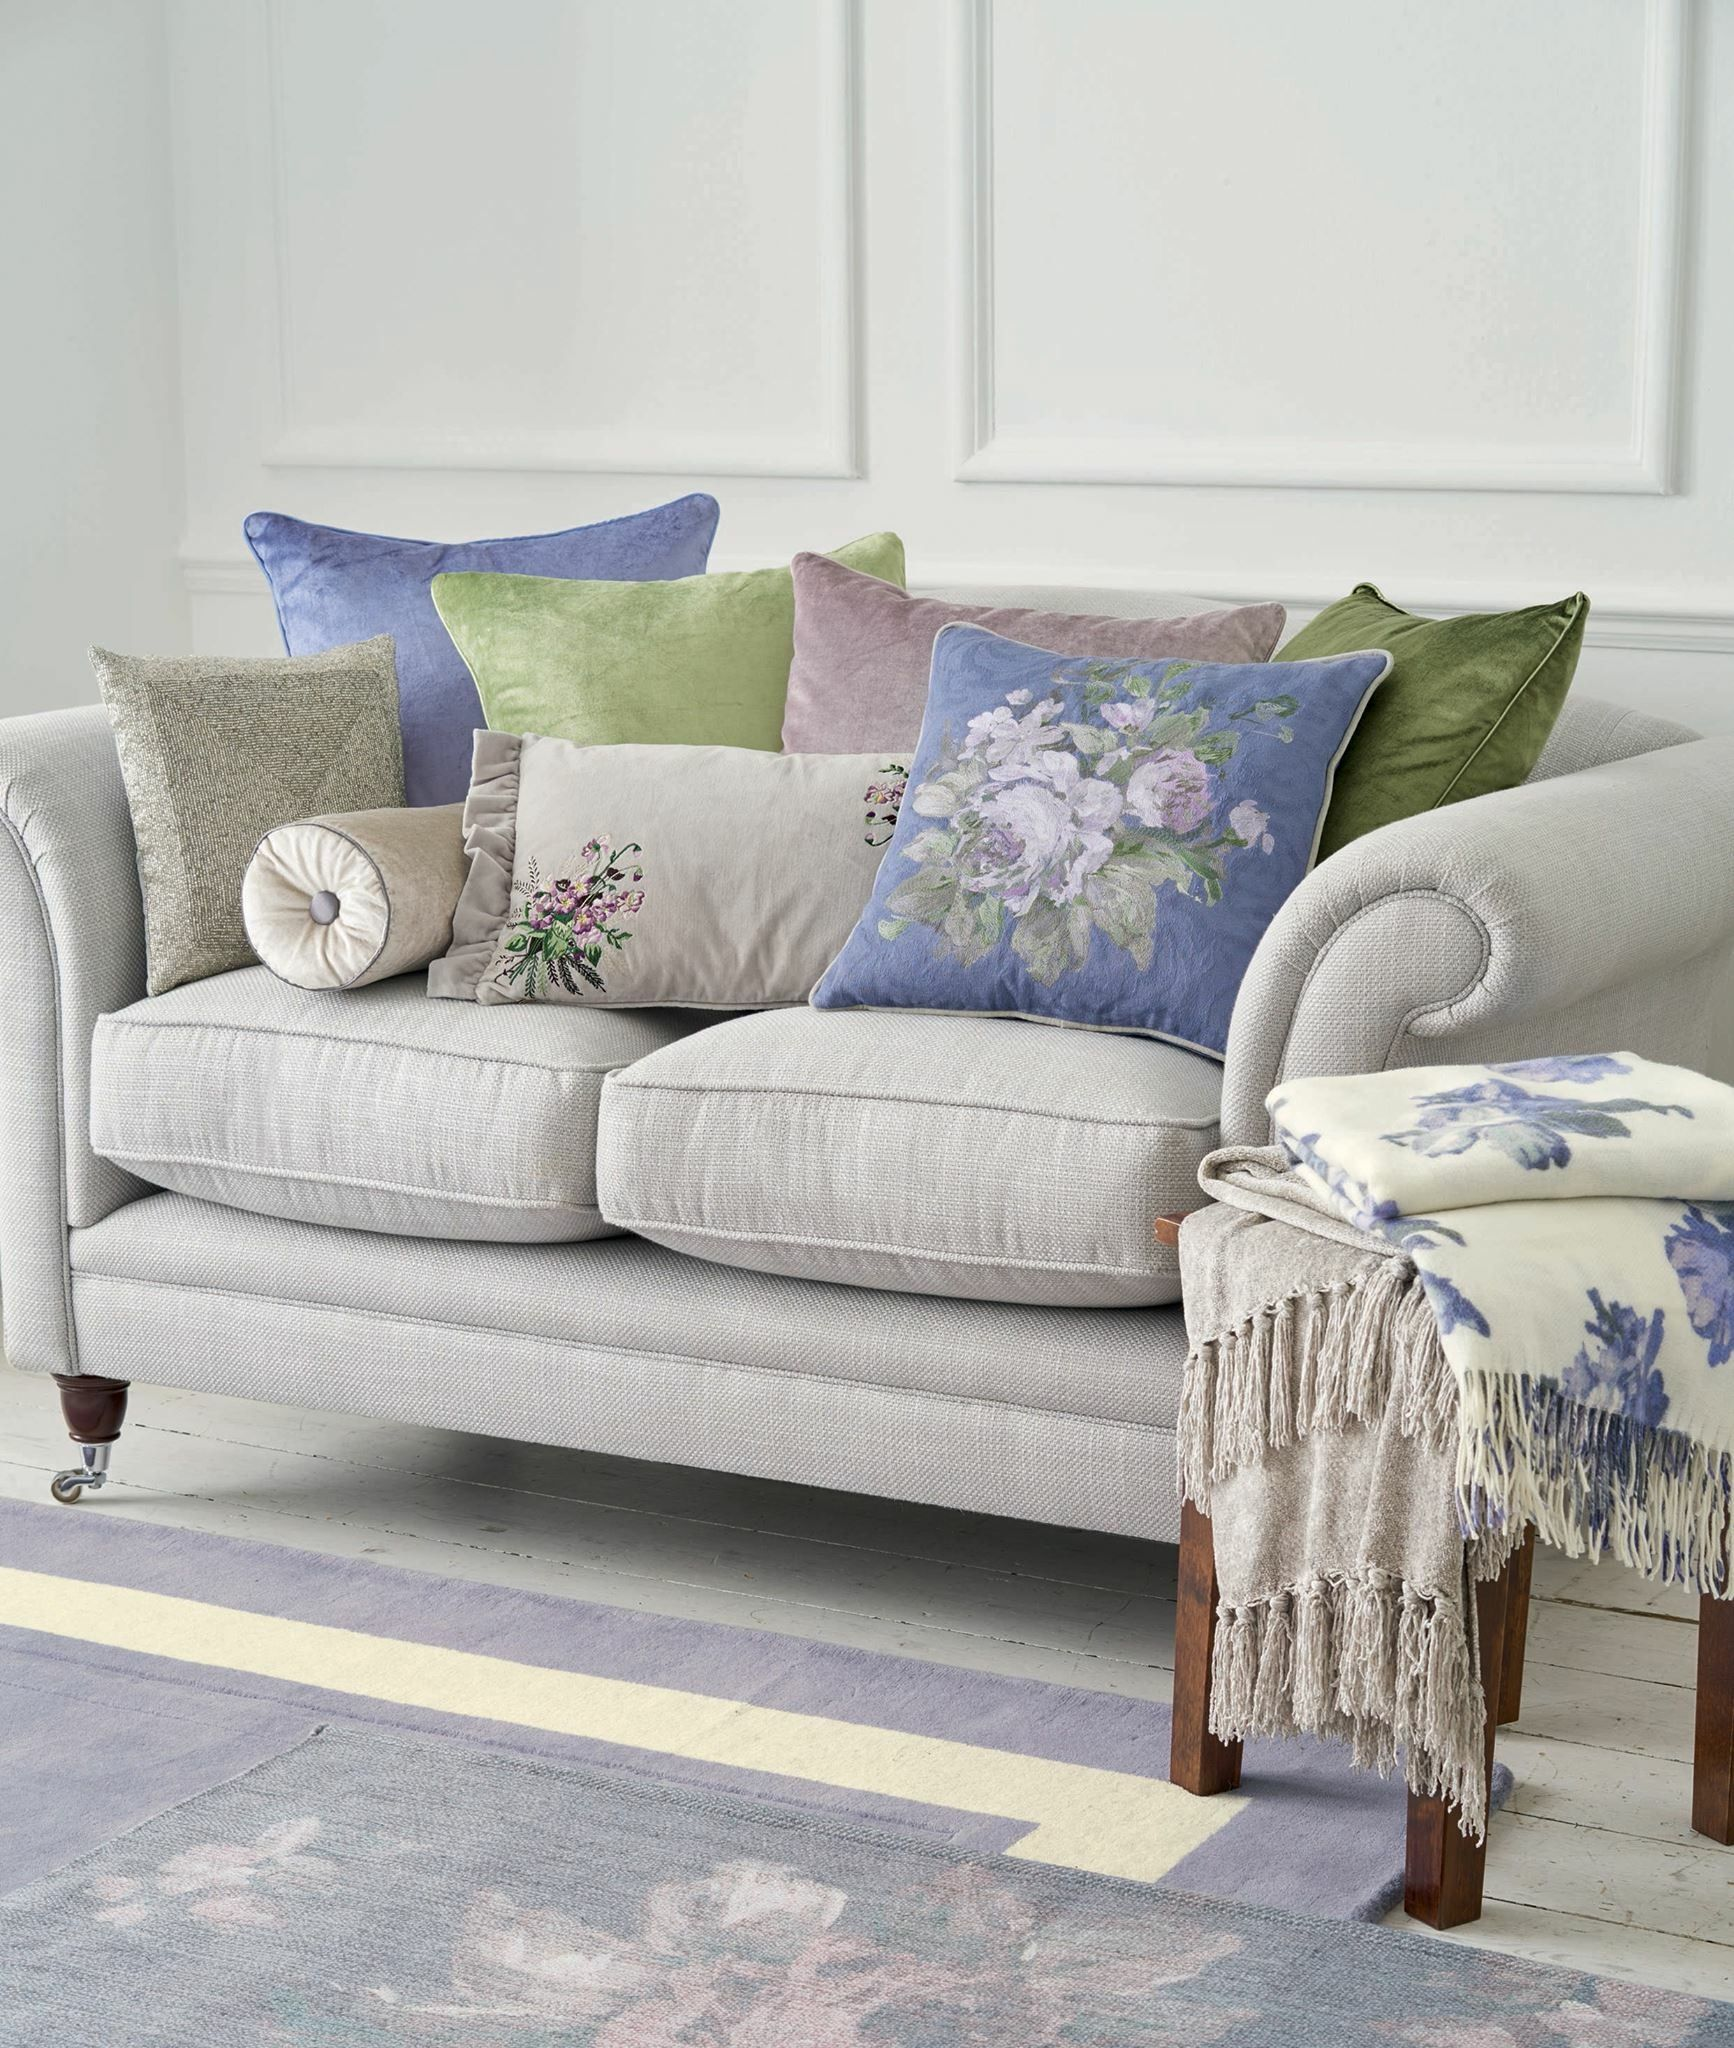 Pin by Karen on New house decorating ideas Laura ashley